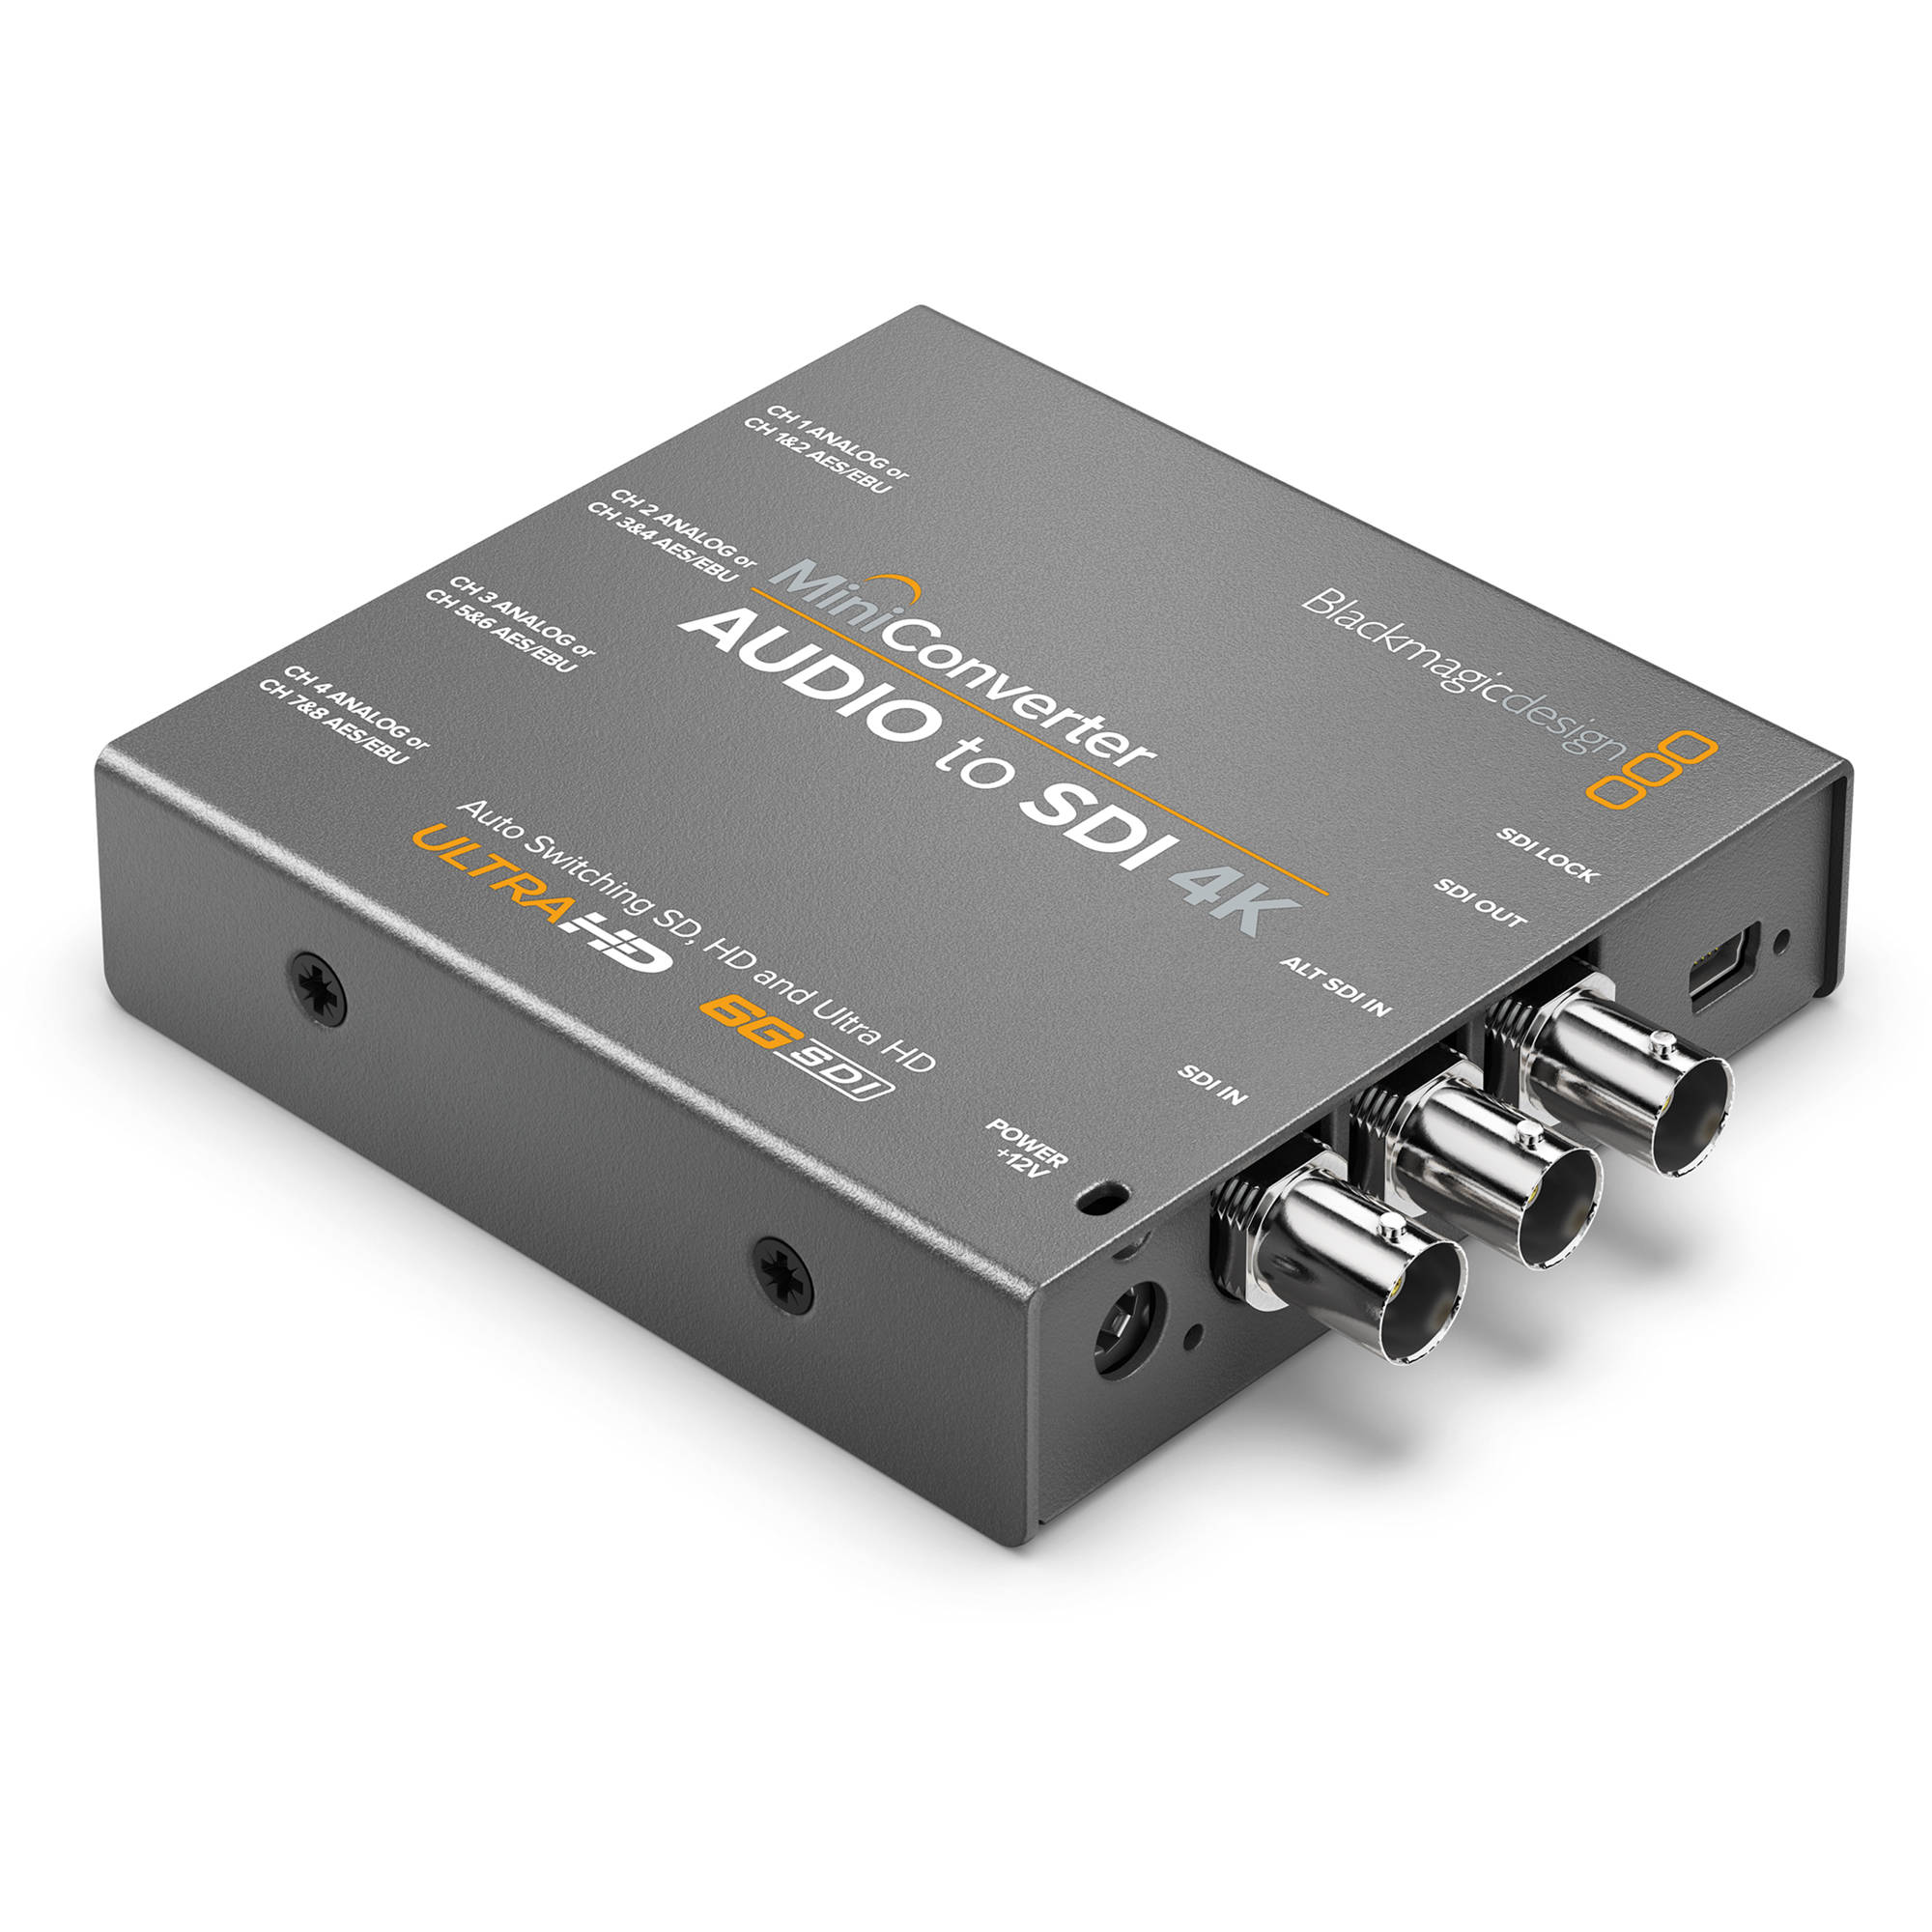 Blackmagic design mini converter audio to sdi 4k convmcauds4k for Convert image to blueprint online